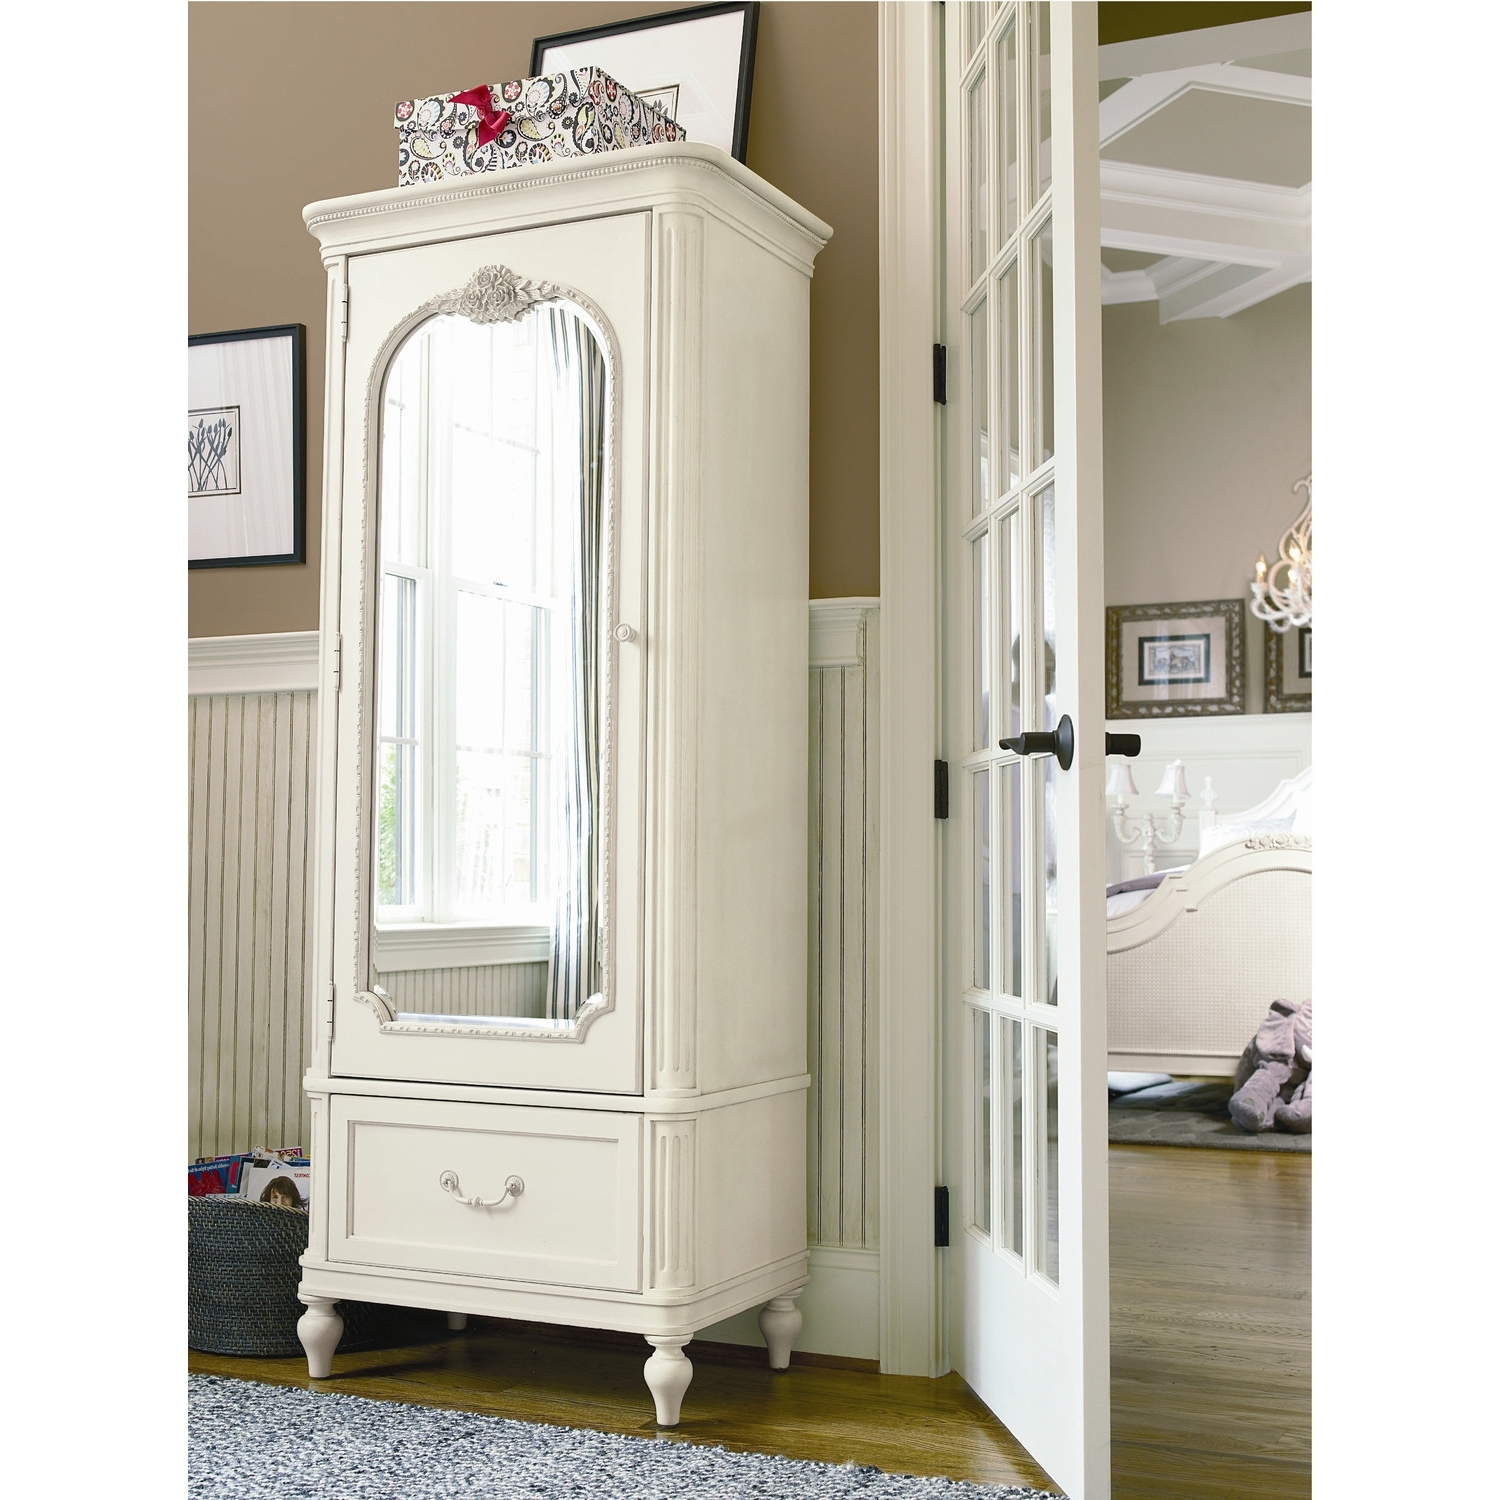 Bedroom: Antique Interior Storage Design With Wardrobe Armoire Throughout Famous White Wardrobes Armoire (View 3 of 15)